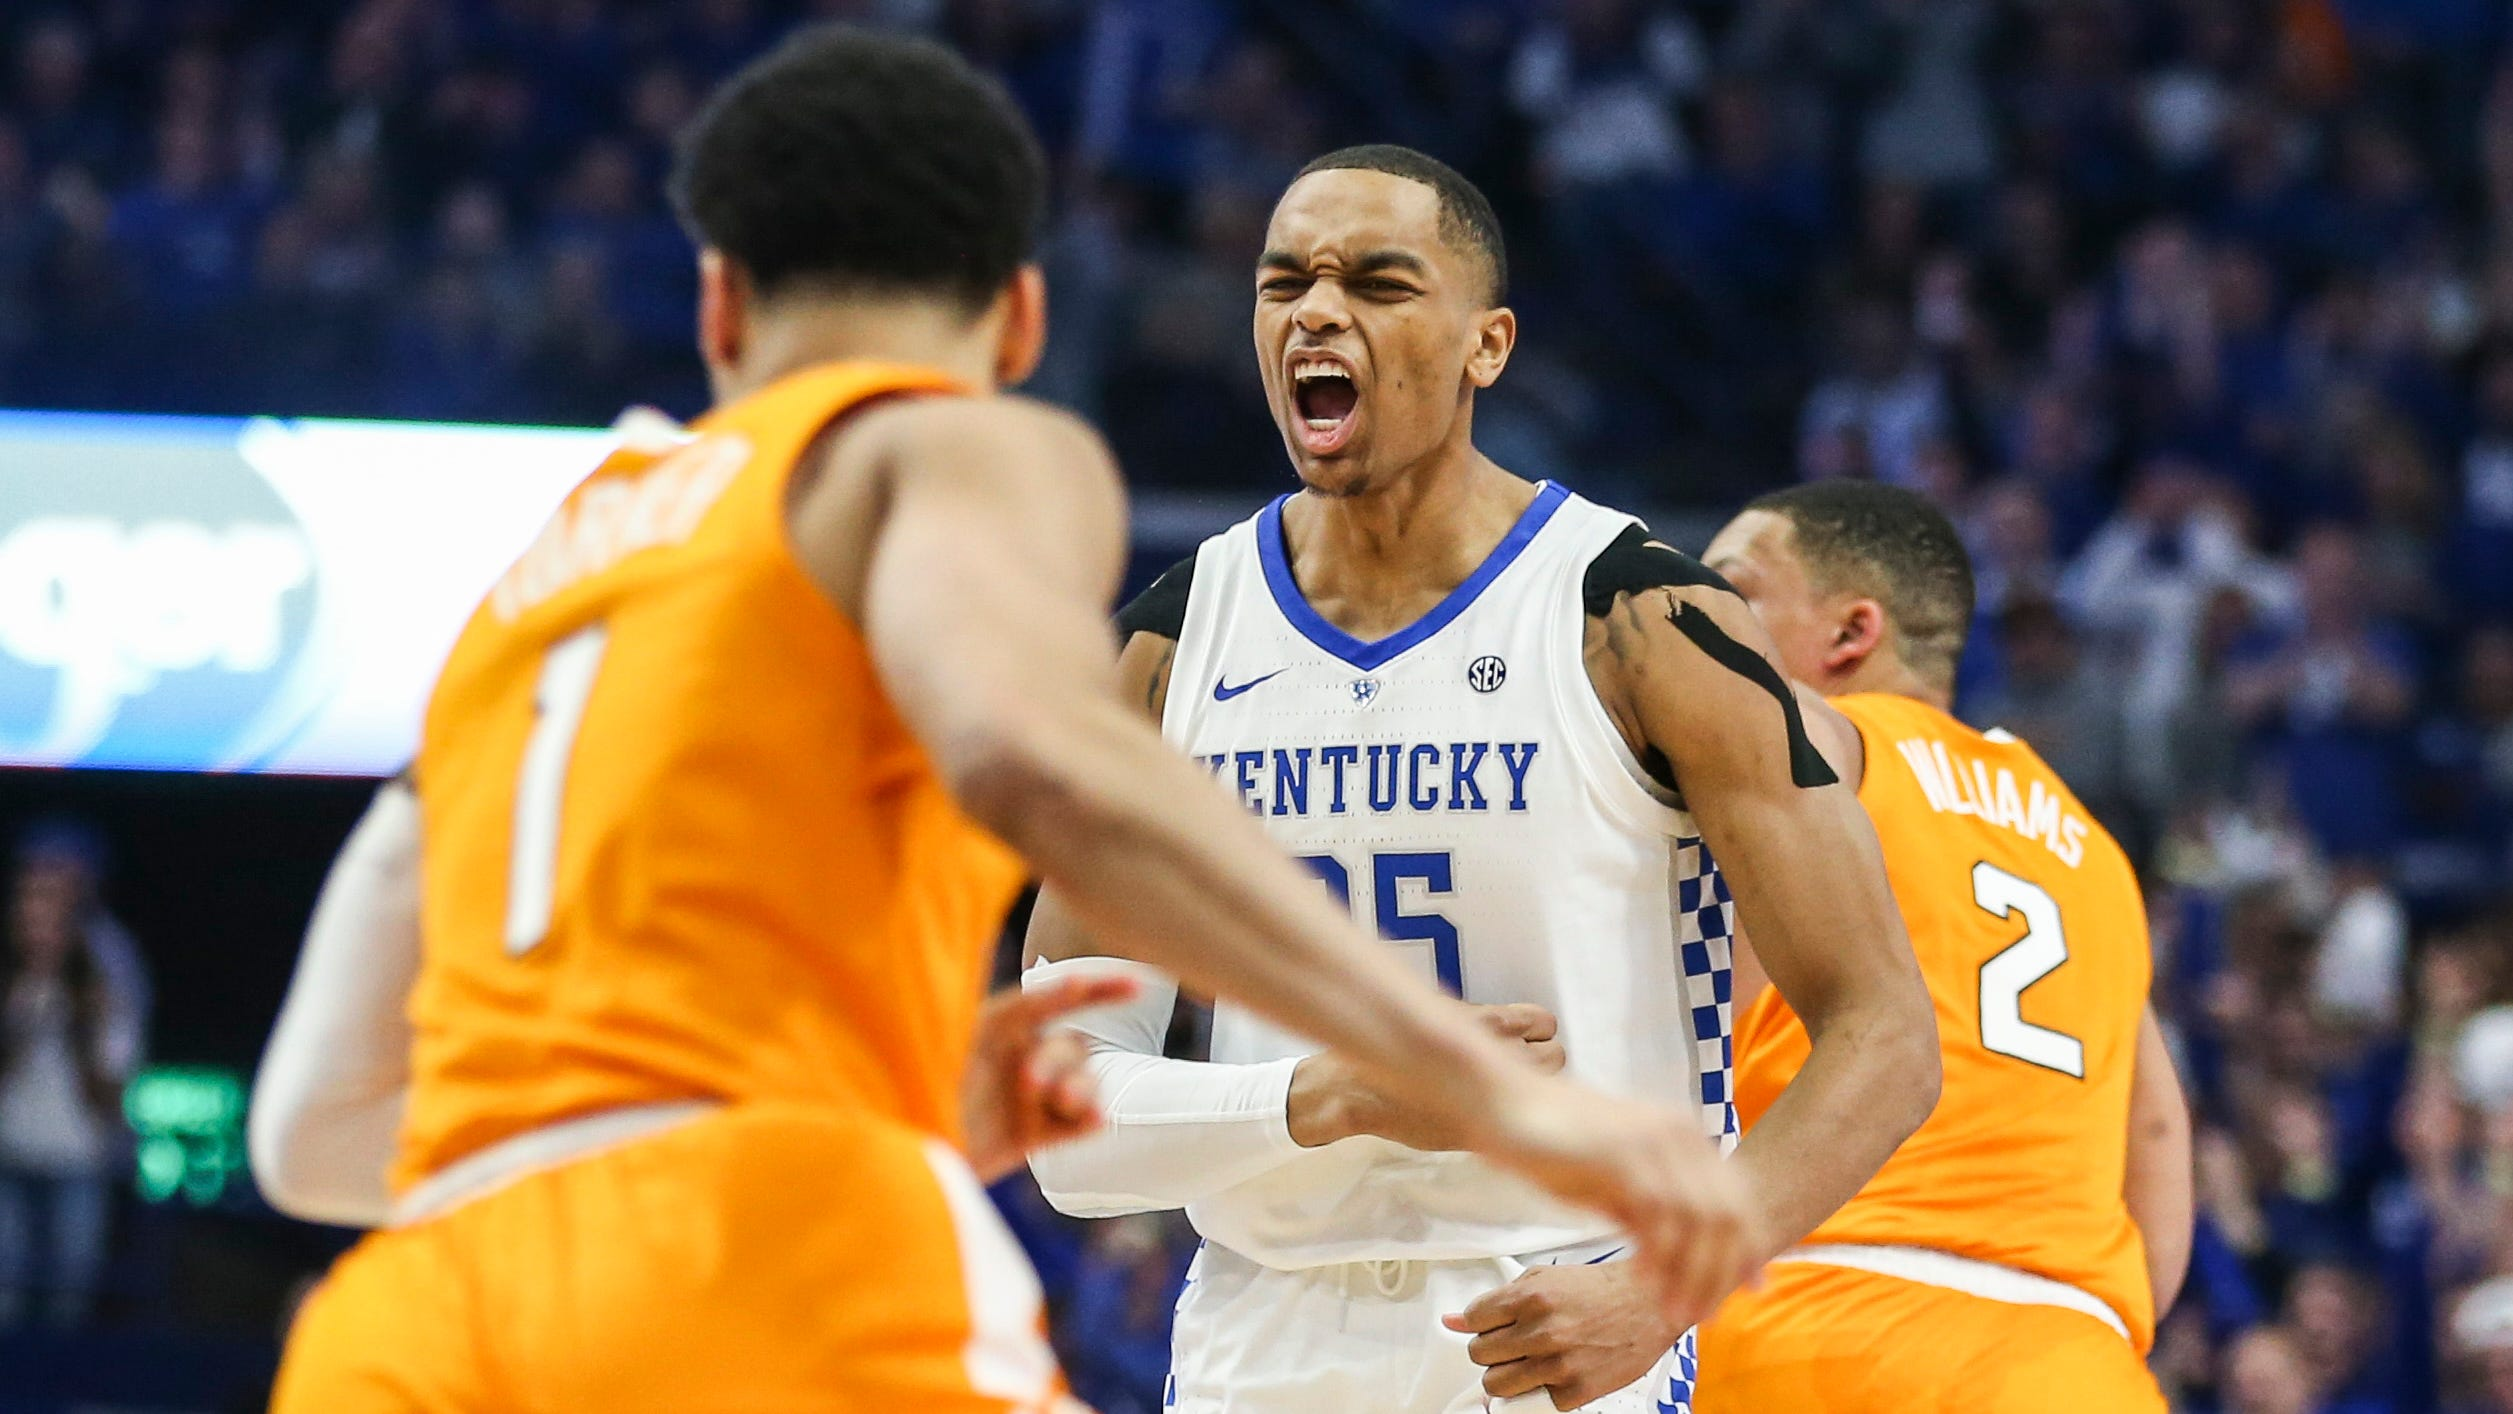 Kentucky's PJ Washington Jr celebrates after hitting a three during the first half in the game against Tennessee. Feb. 16, 2019